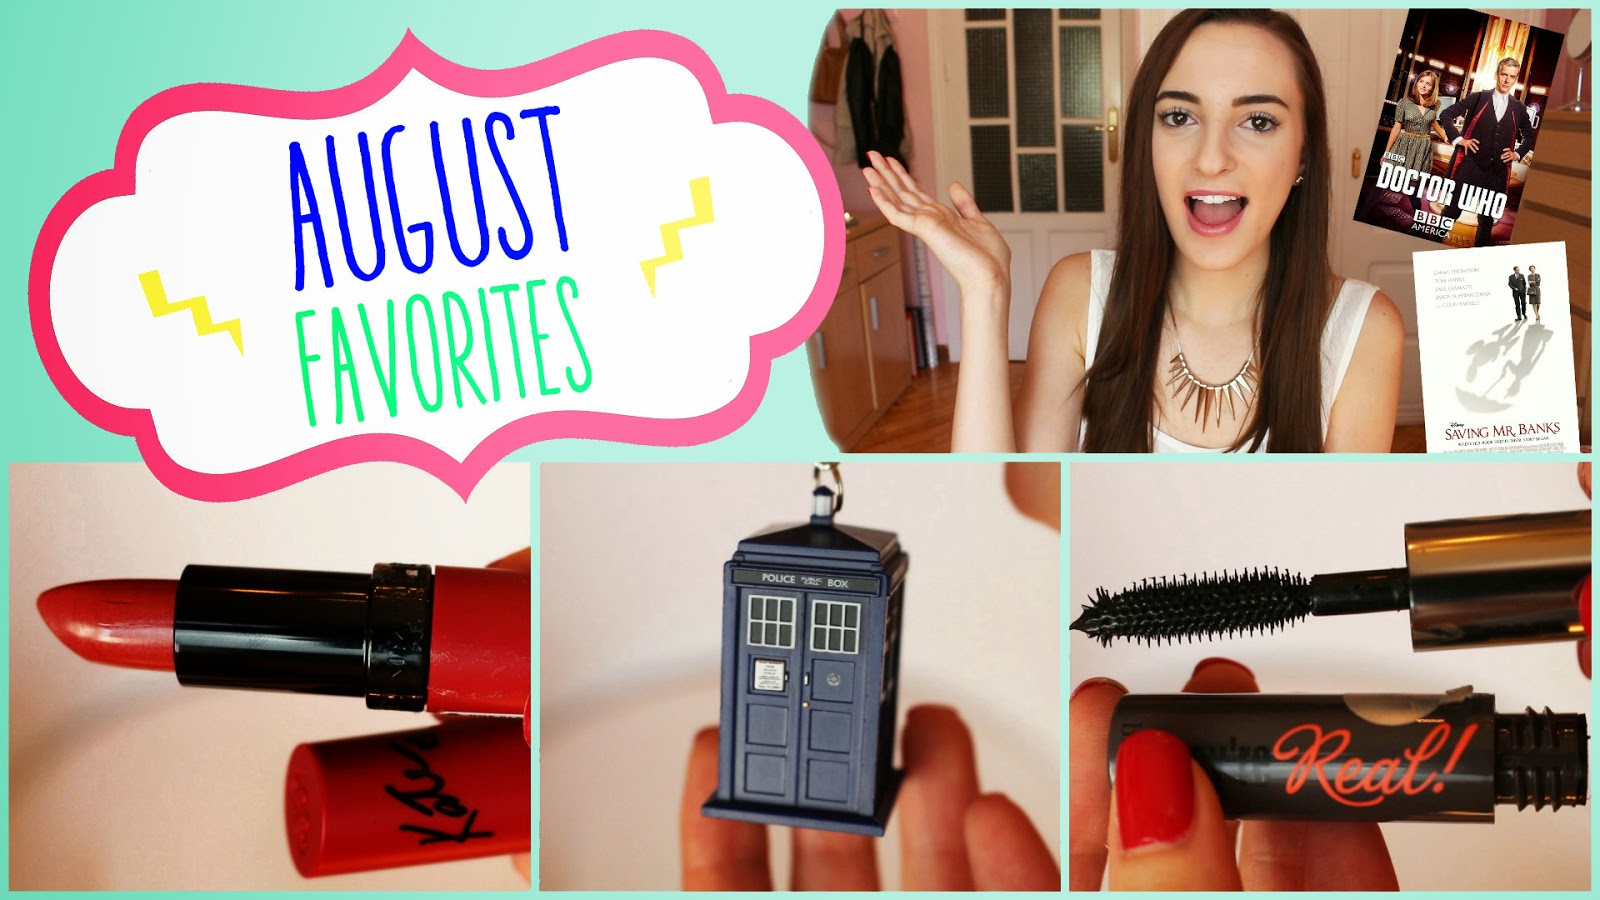 august favorites makeup rimmel benefit they're real mascara